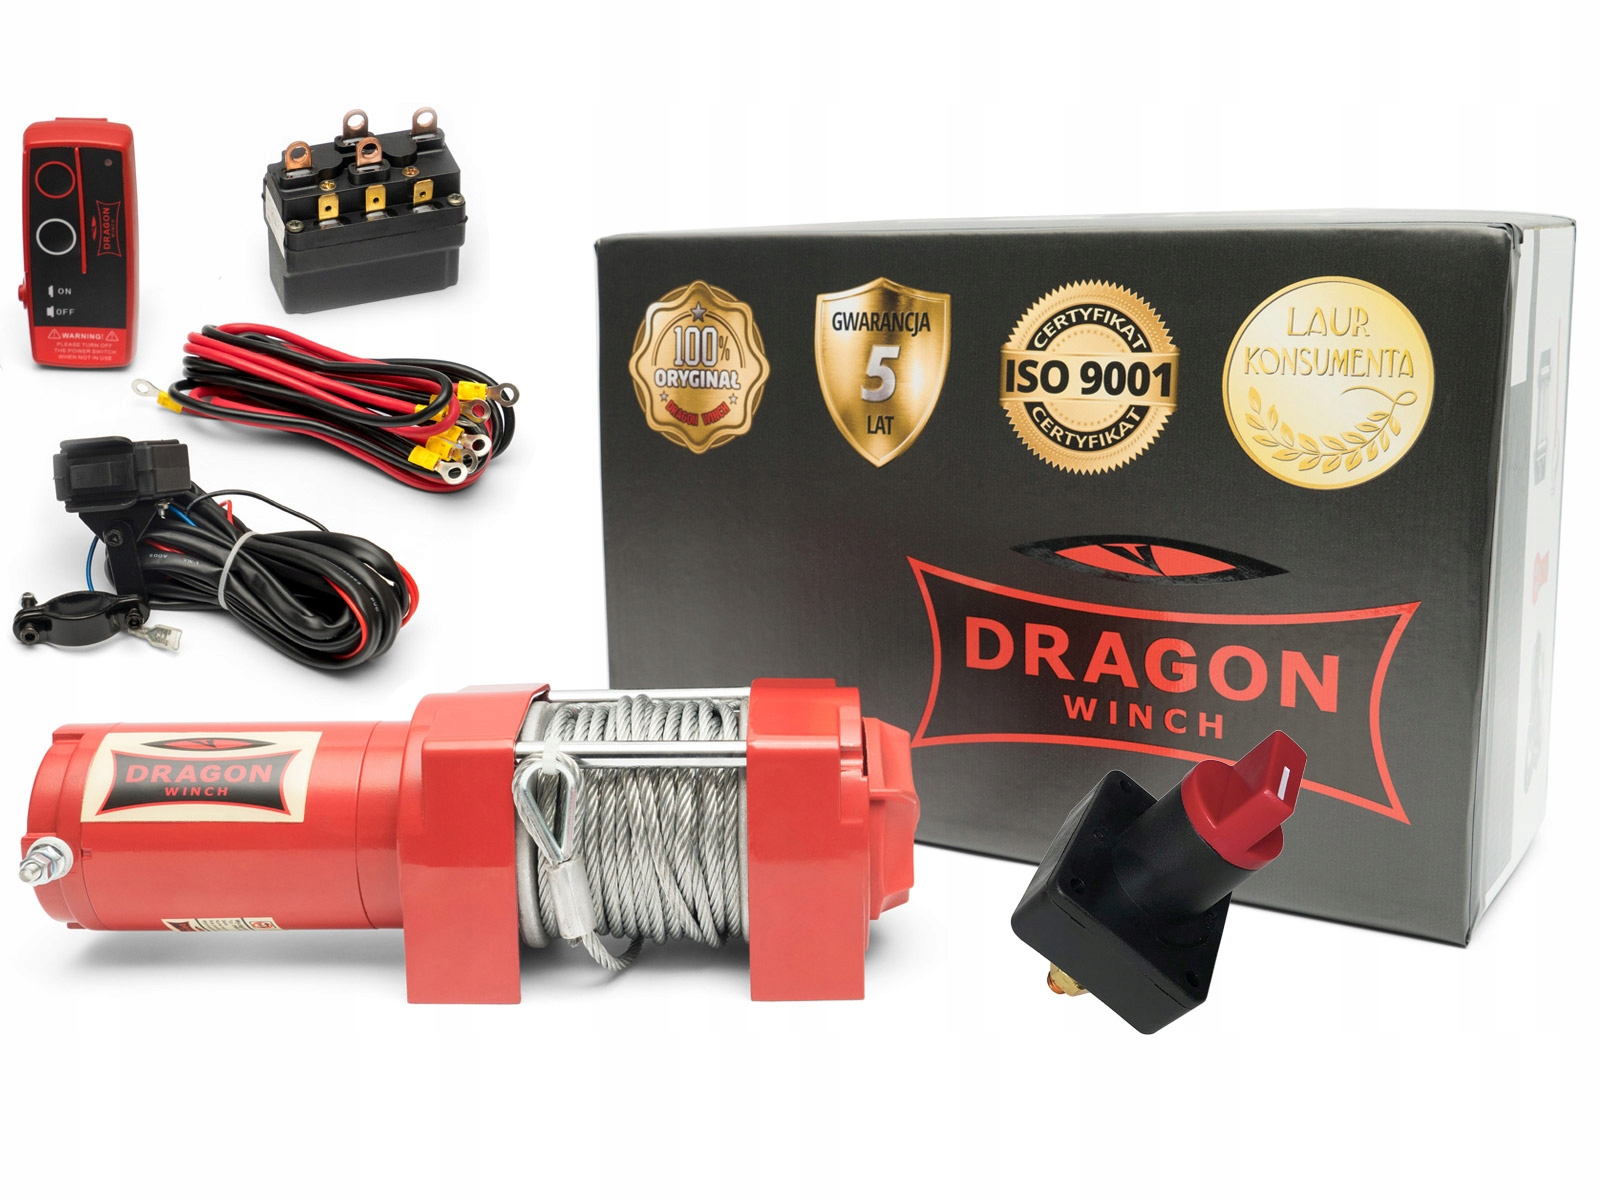 ЛЕБЕДКА DRAGON DWM3500ST ЛЕБЕДКА QUAD